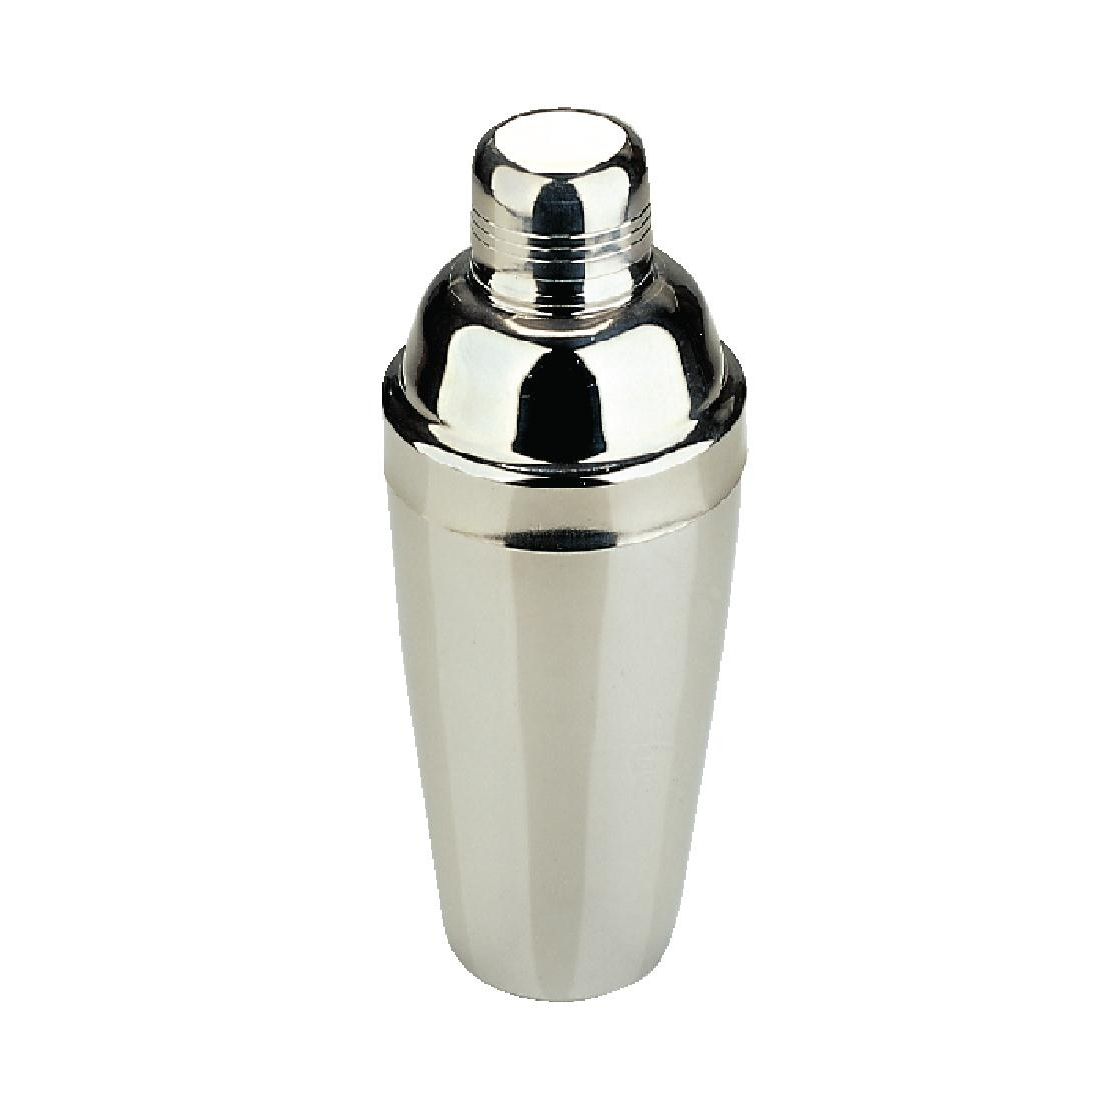 Shaker à cocktail inox 780ml